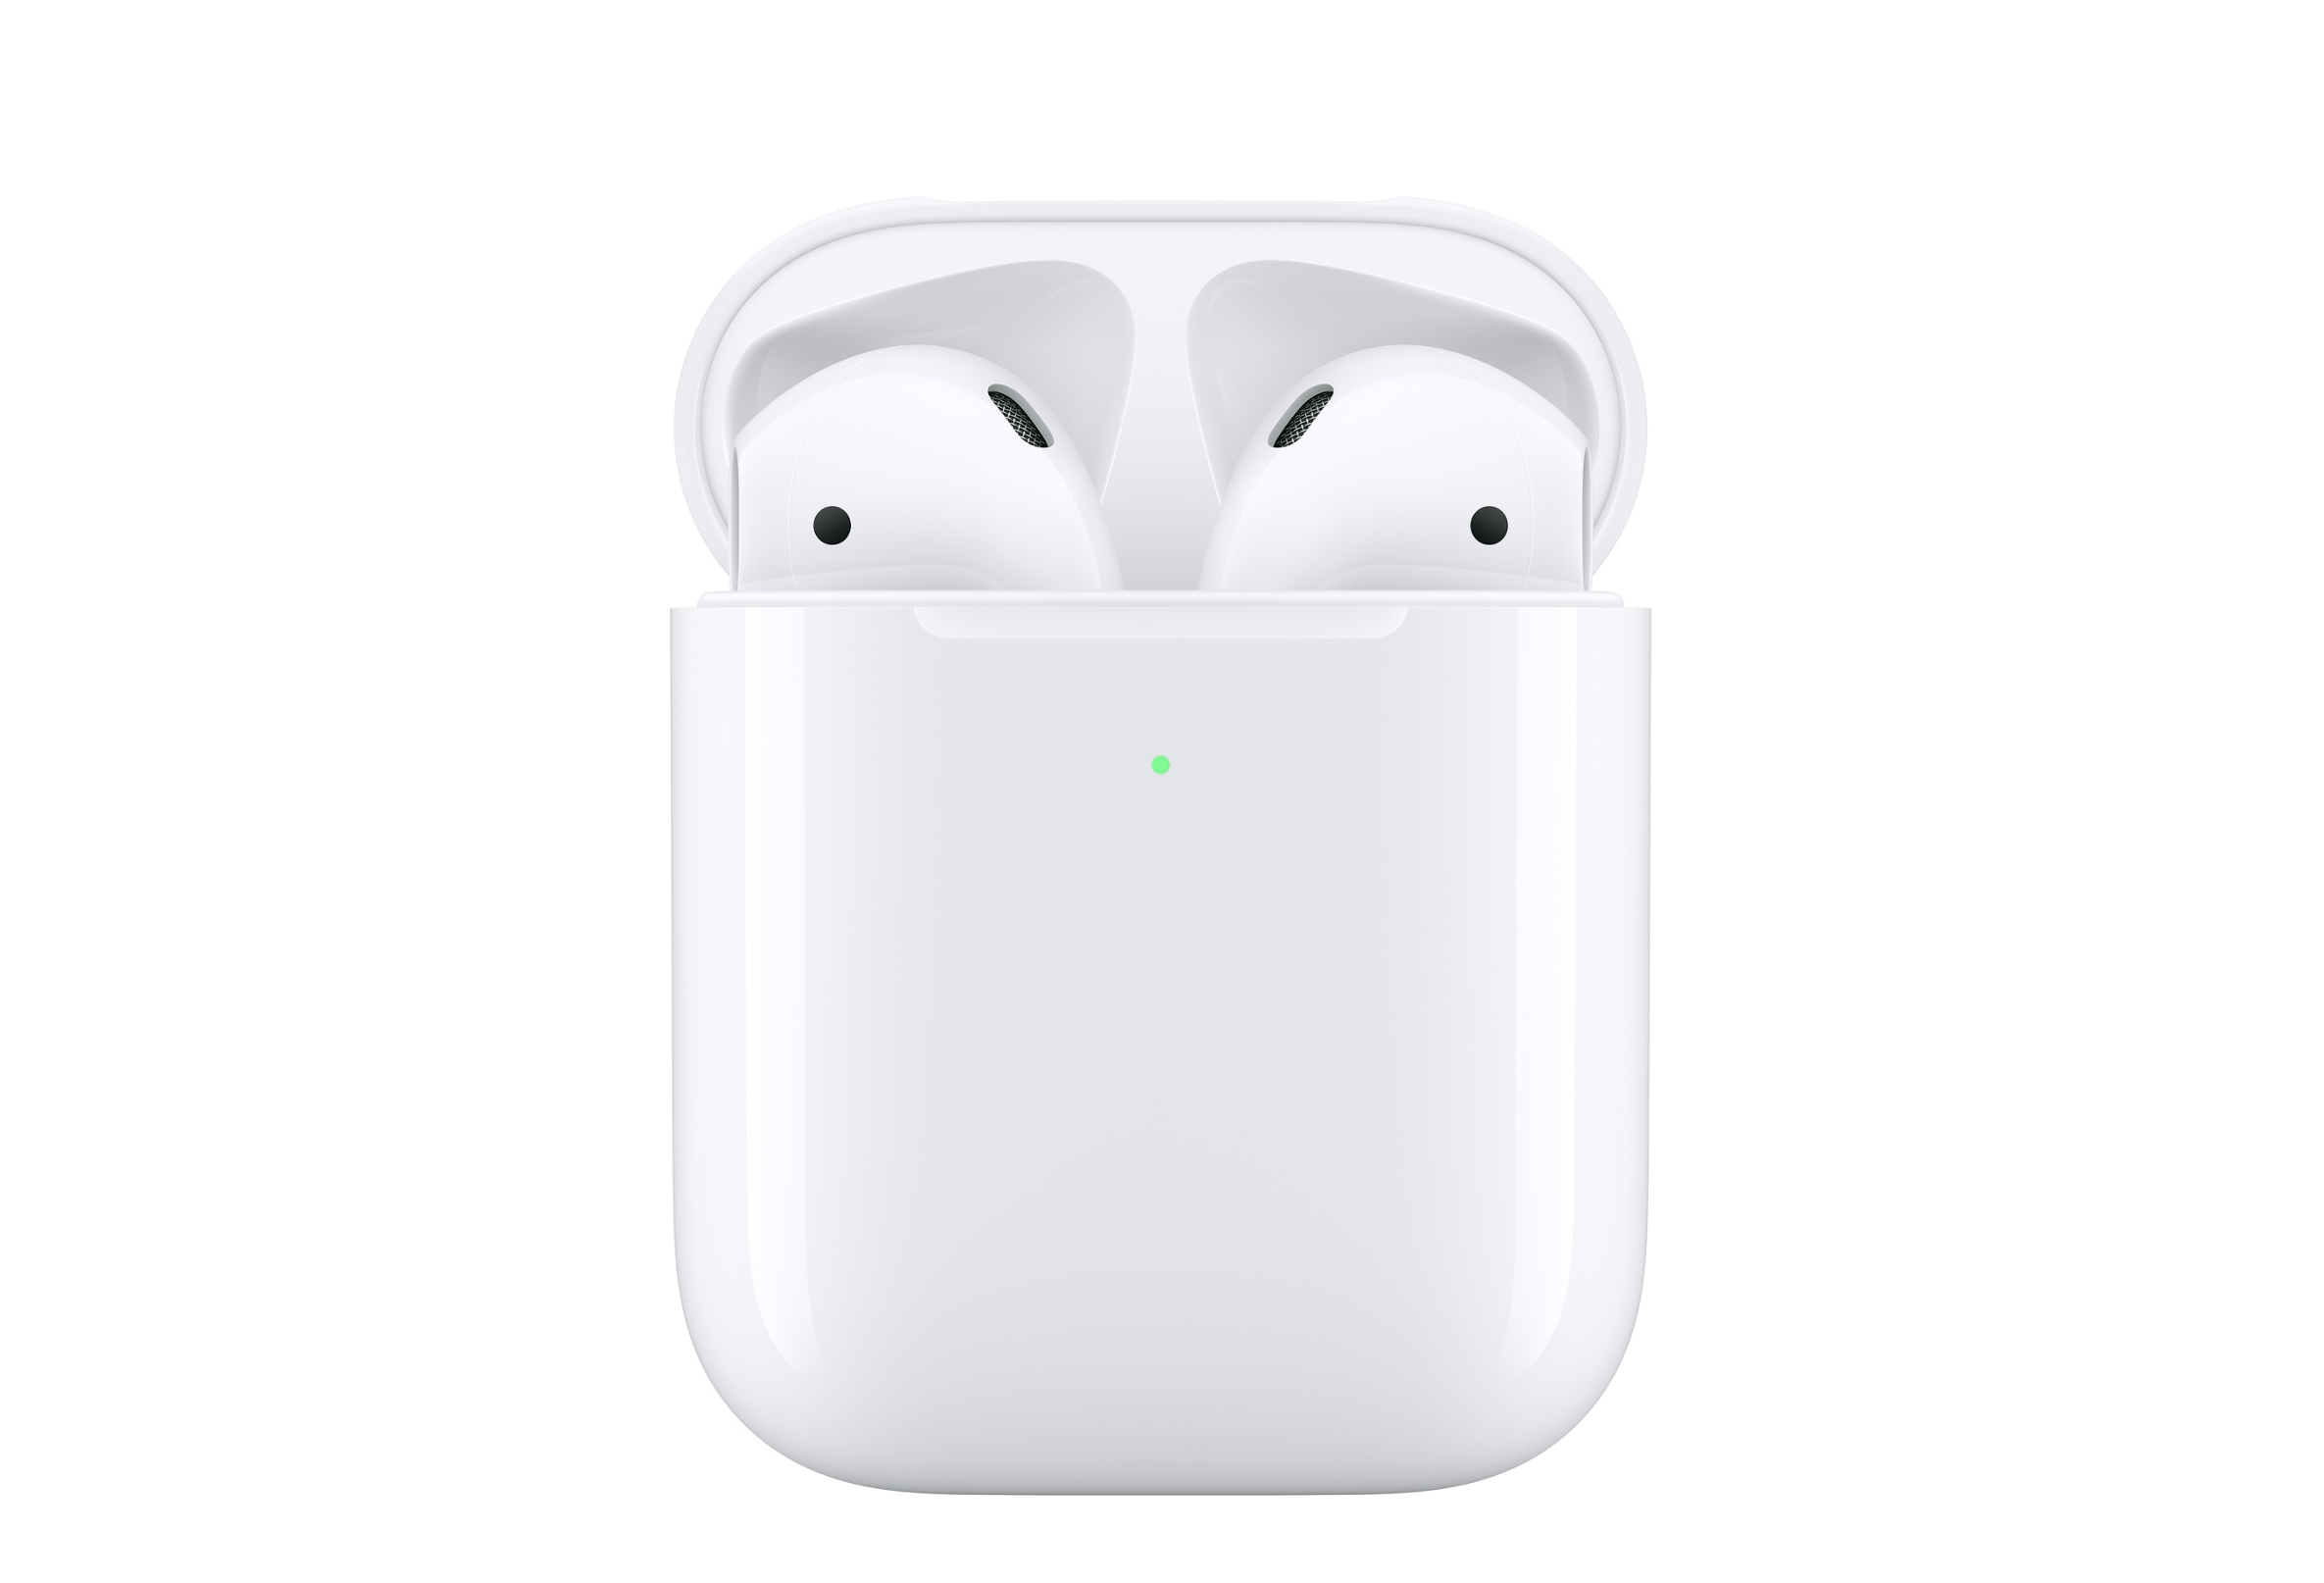 timeless design a8c6f a8194 Apple's new AirPods come with a wireless charging case, Hey Siri ...